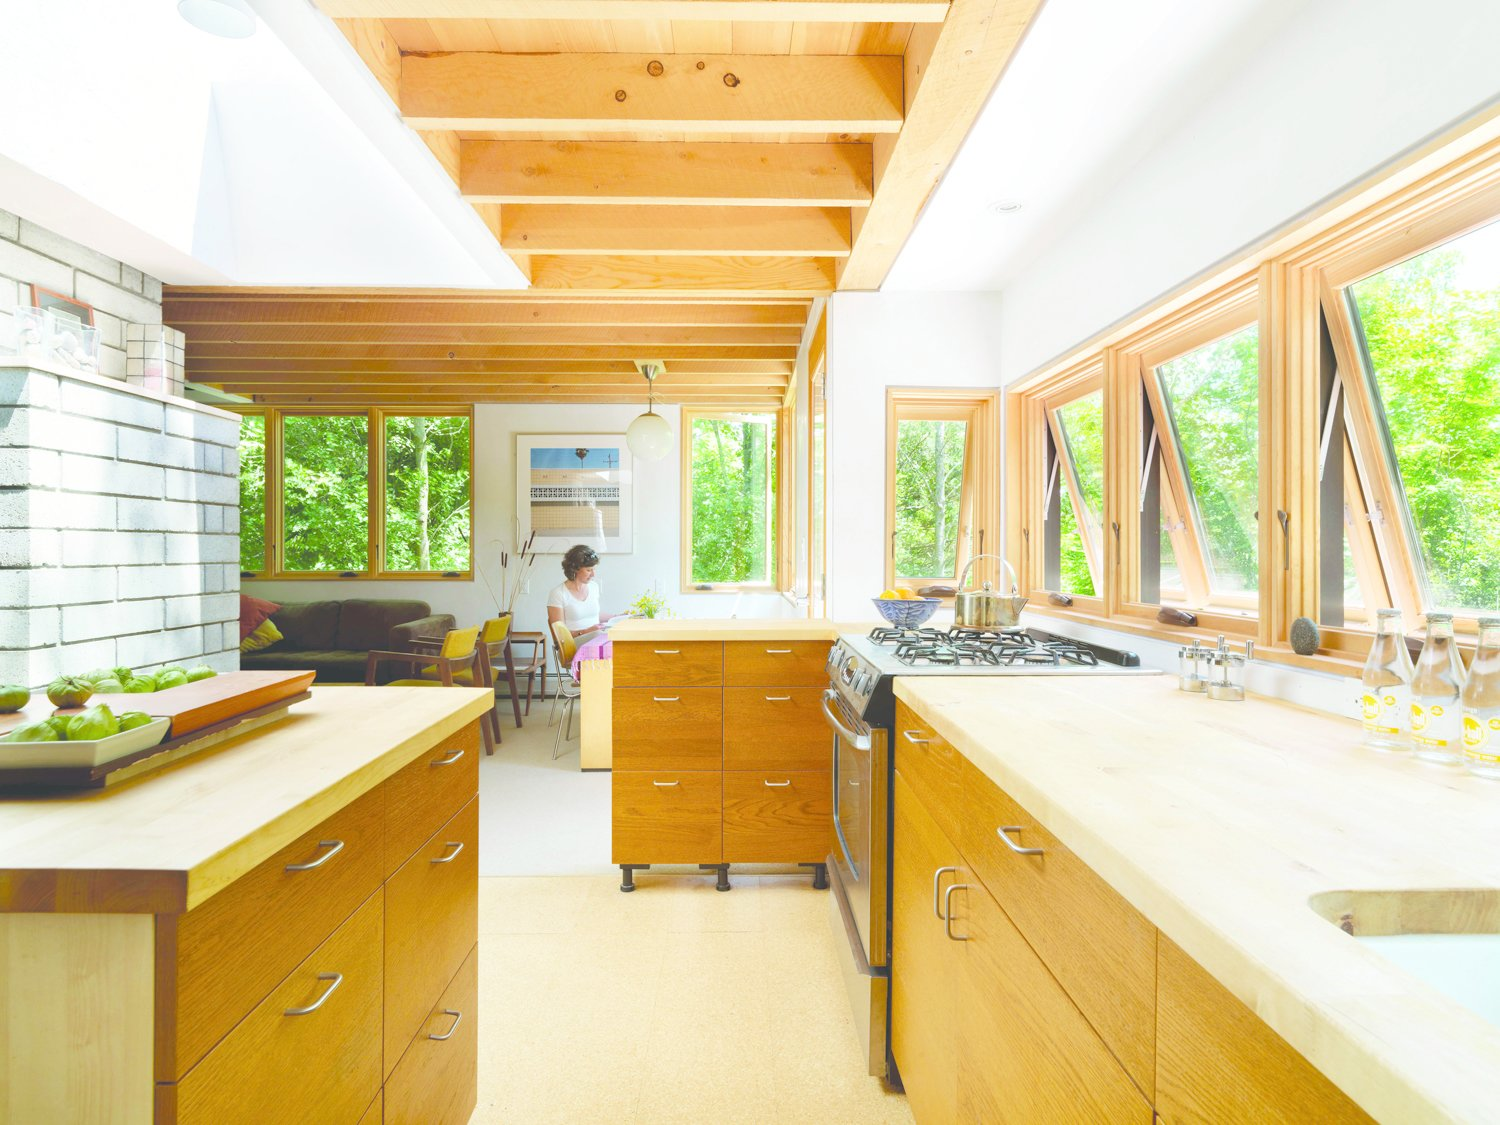 Daylight adds to the warm ambiance of the wooden millwork of the Nature Preserve House kitchen.